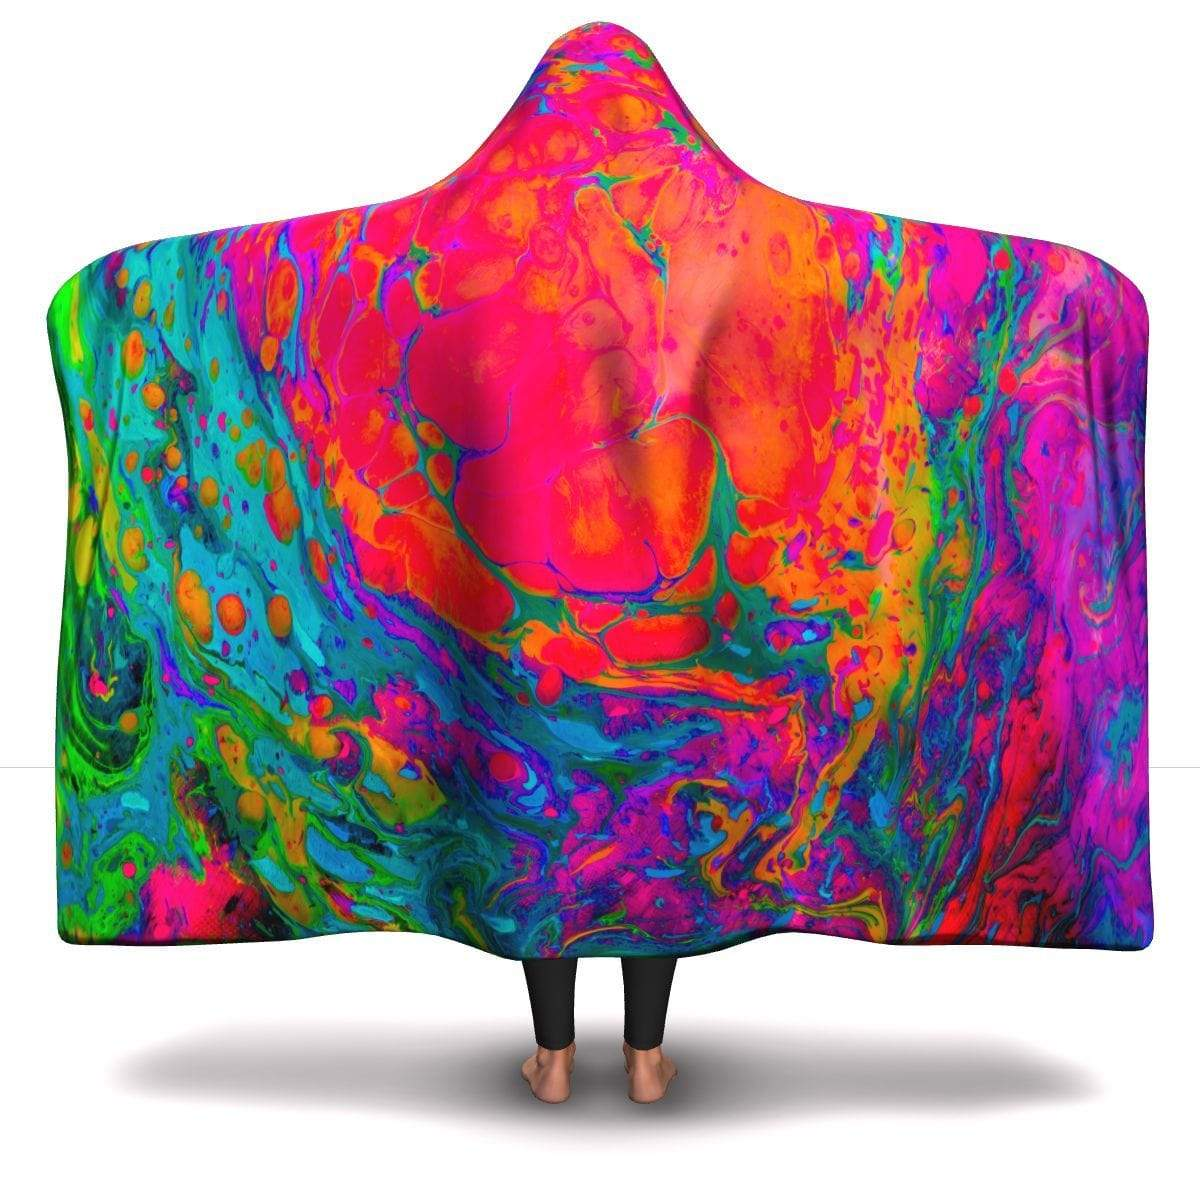 Rainbow Splash Hooded Blanket Hooded Blanket Adult / Premium Sherpa